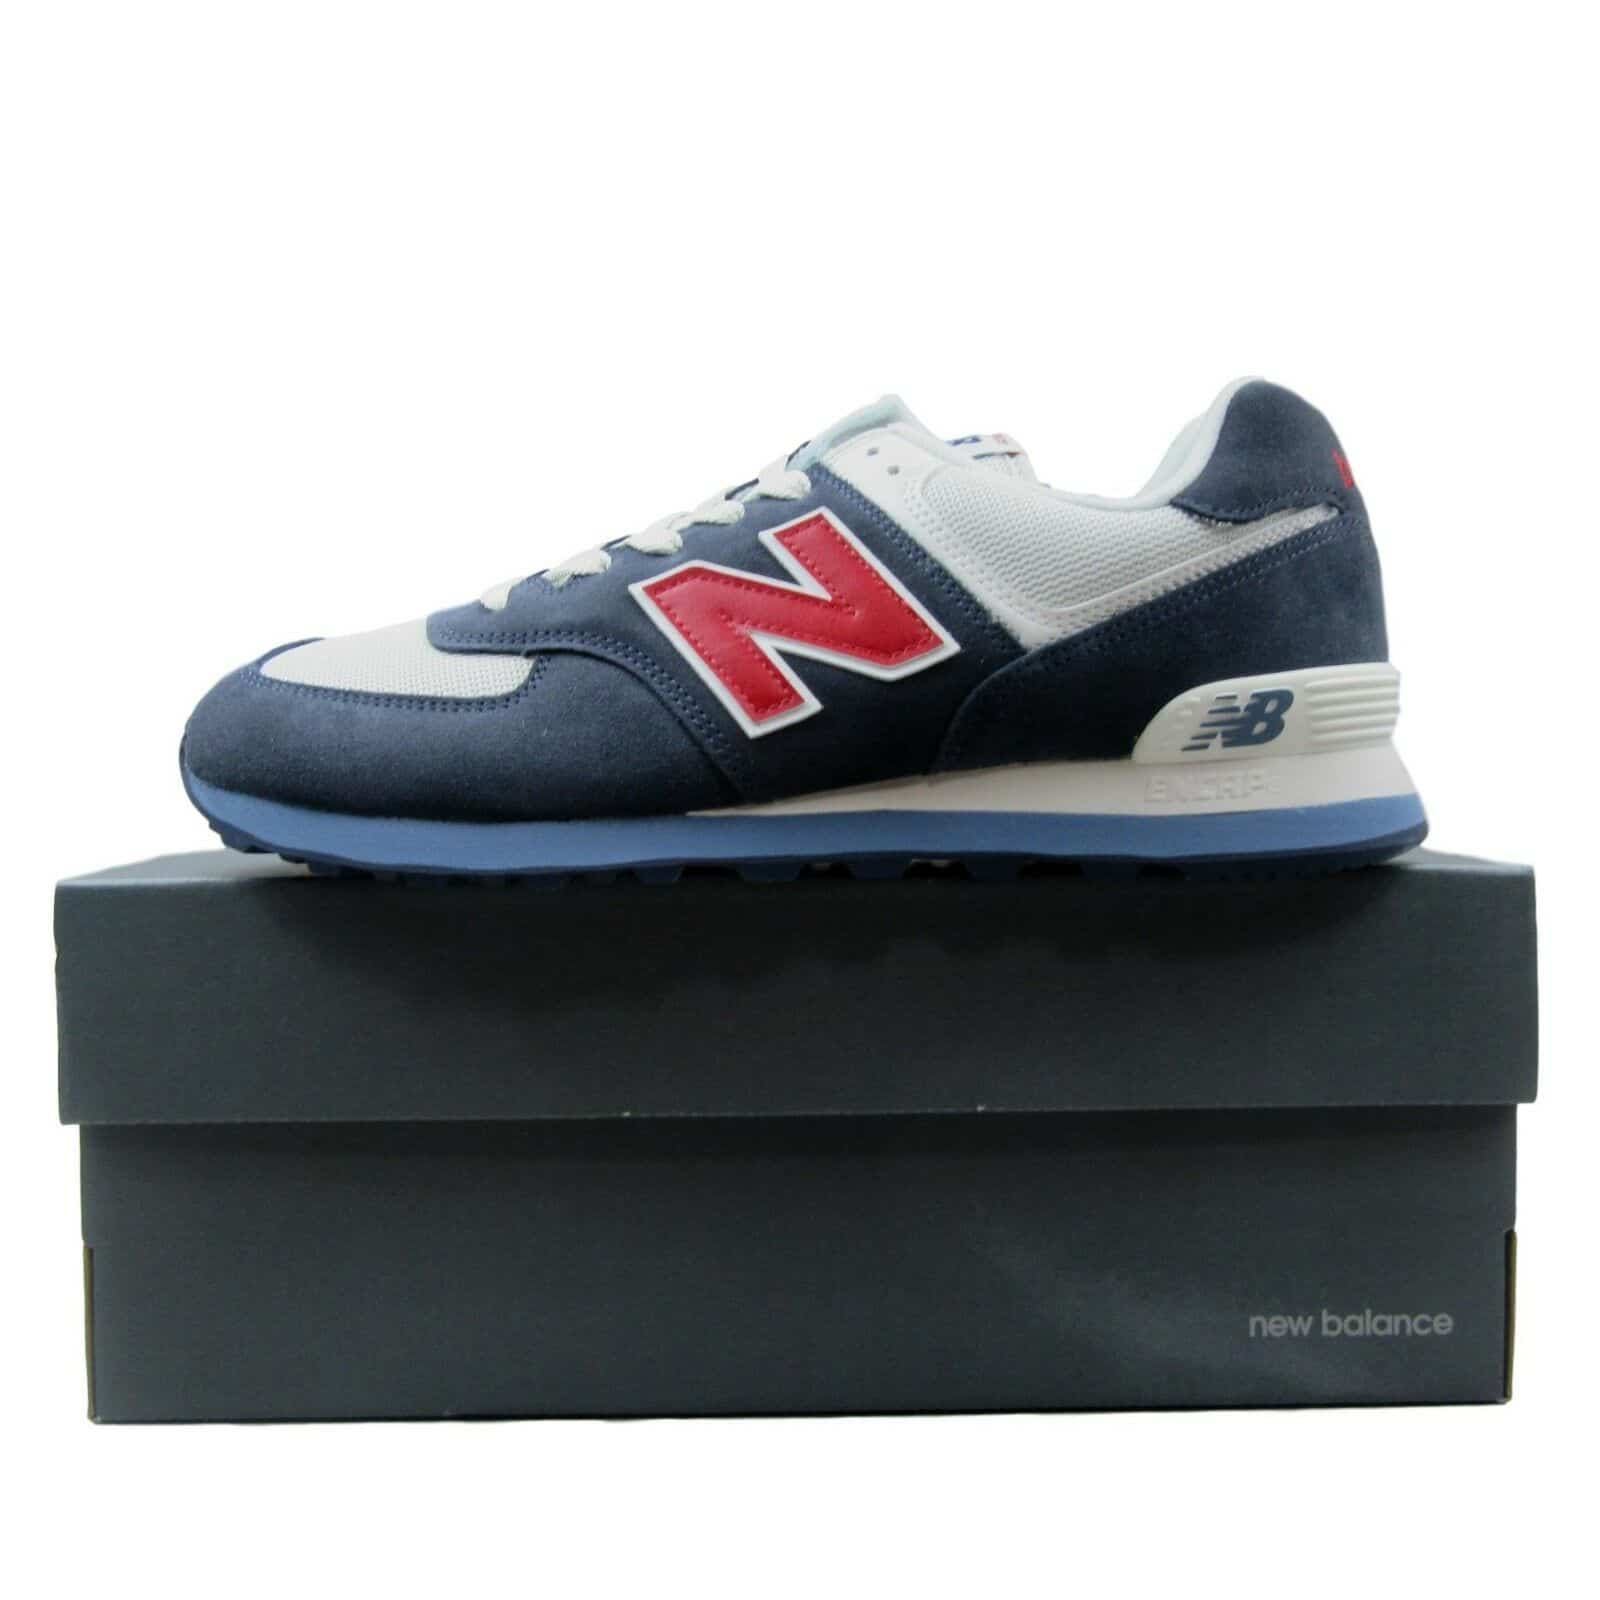 4aa9084561a04 New Balance 574 Classics Sneakers Mens Navy Blue White Red ML574ESC ...